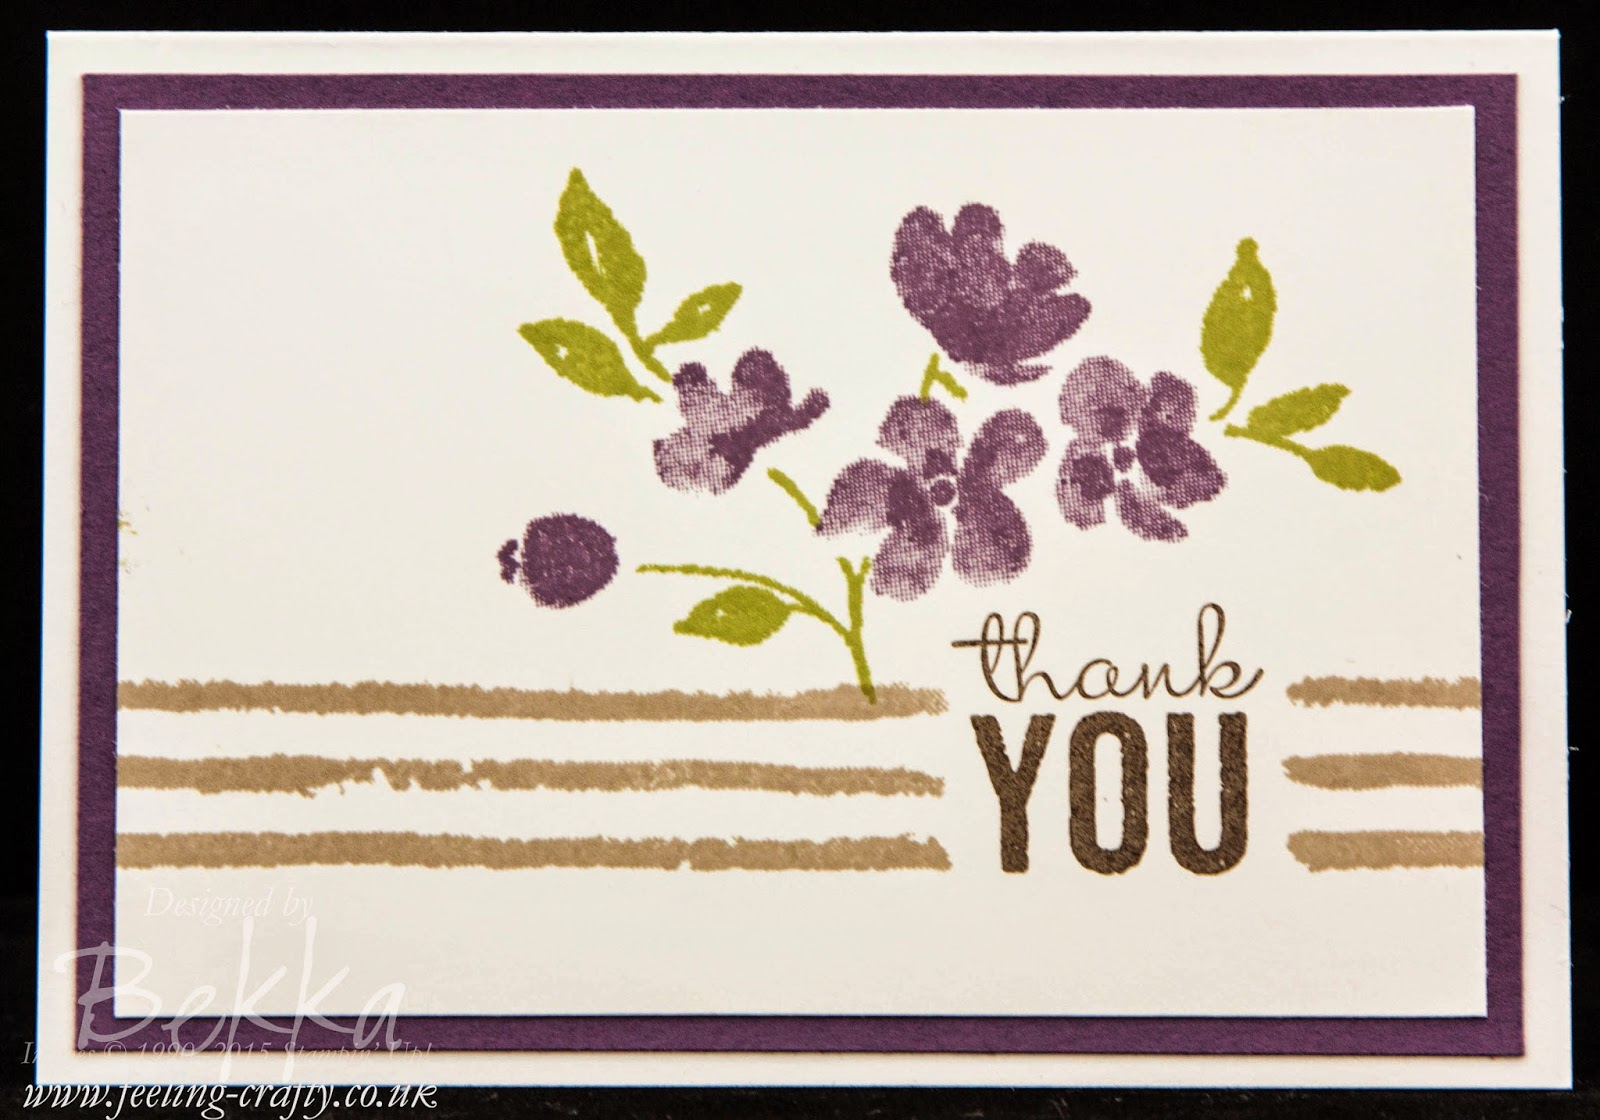 Painted Petals Thank You Cards - get your Stampin' Up! UK Supplies here www.bekka.stampinup.net